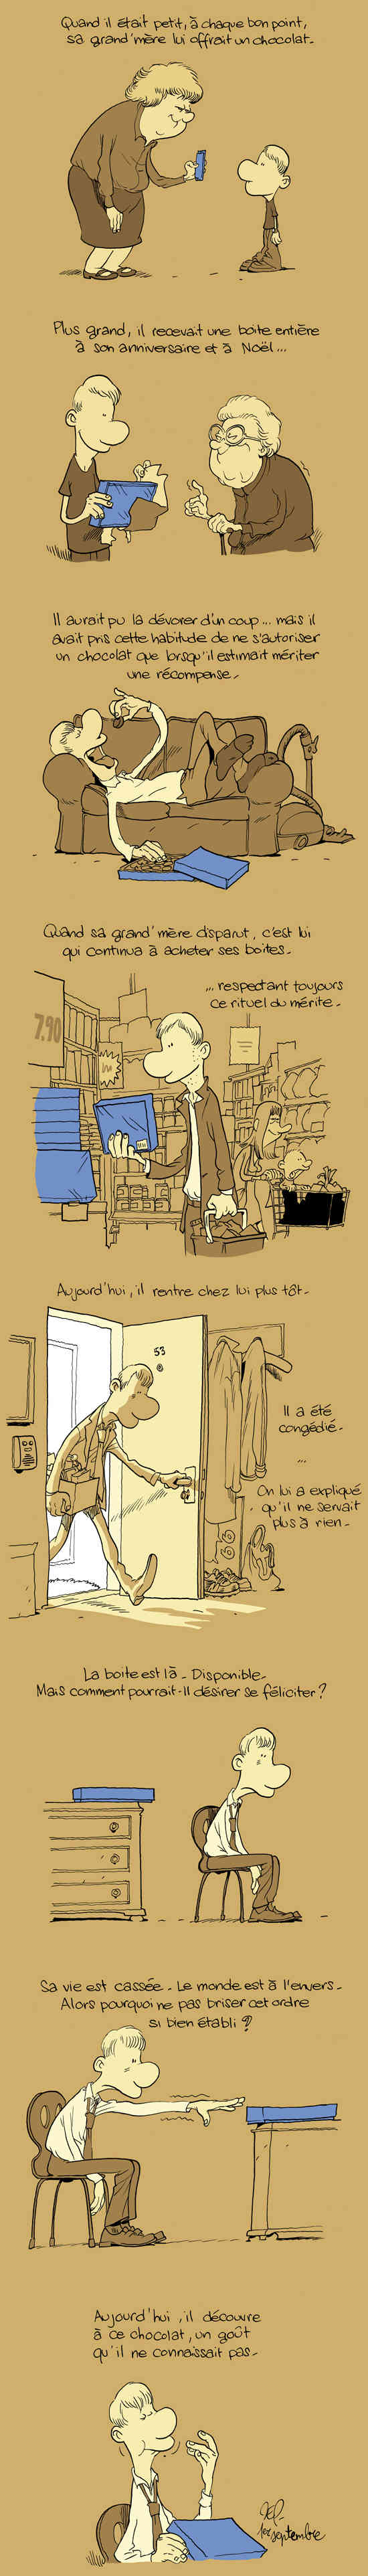 humour - Page 6 Www12910